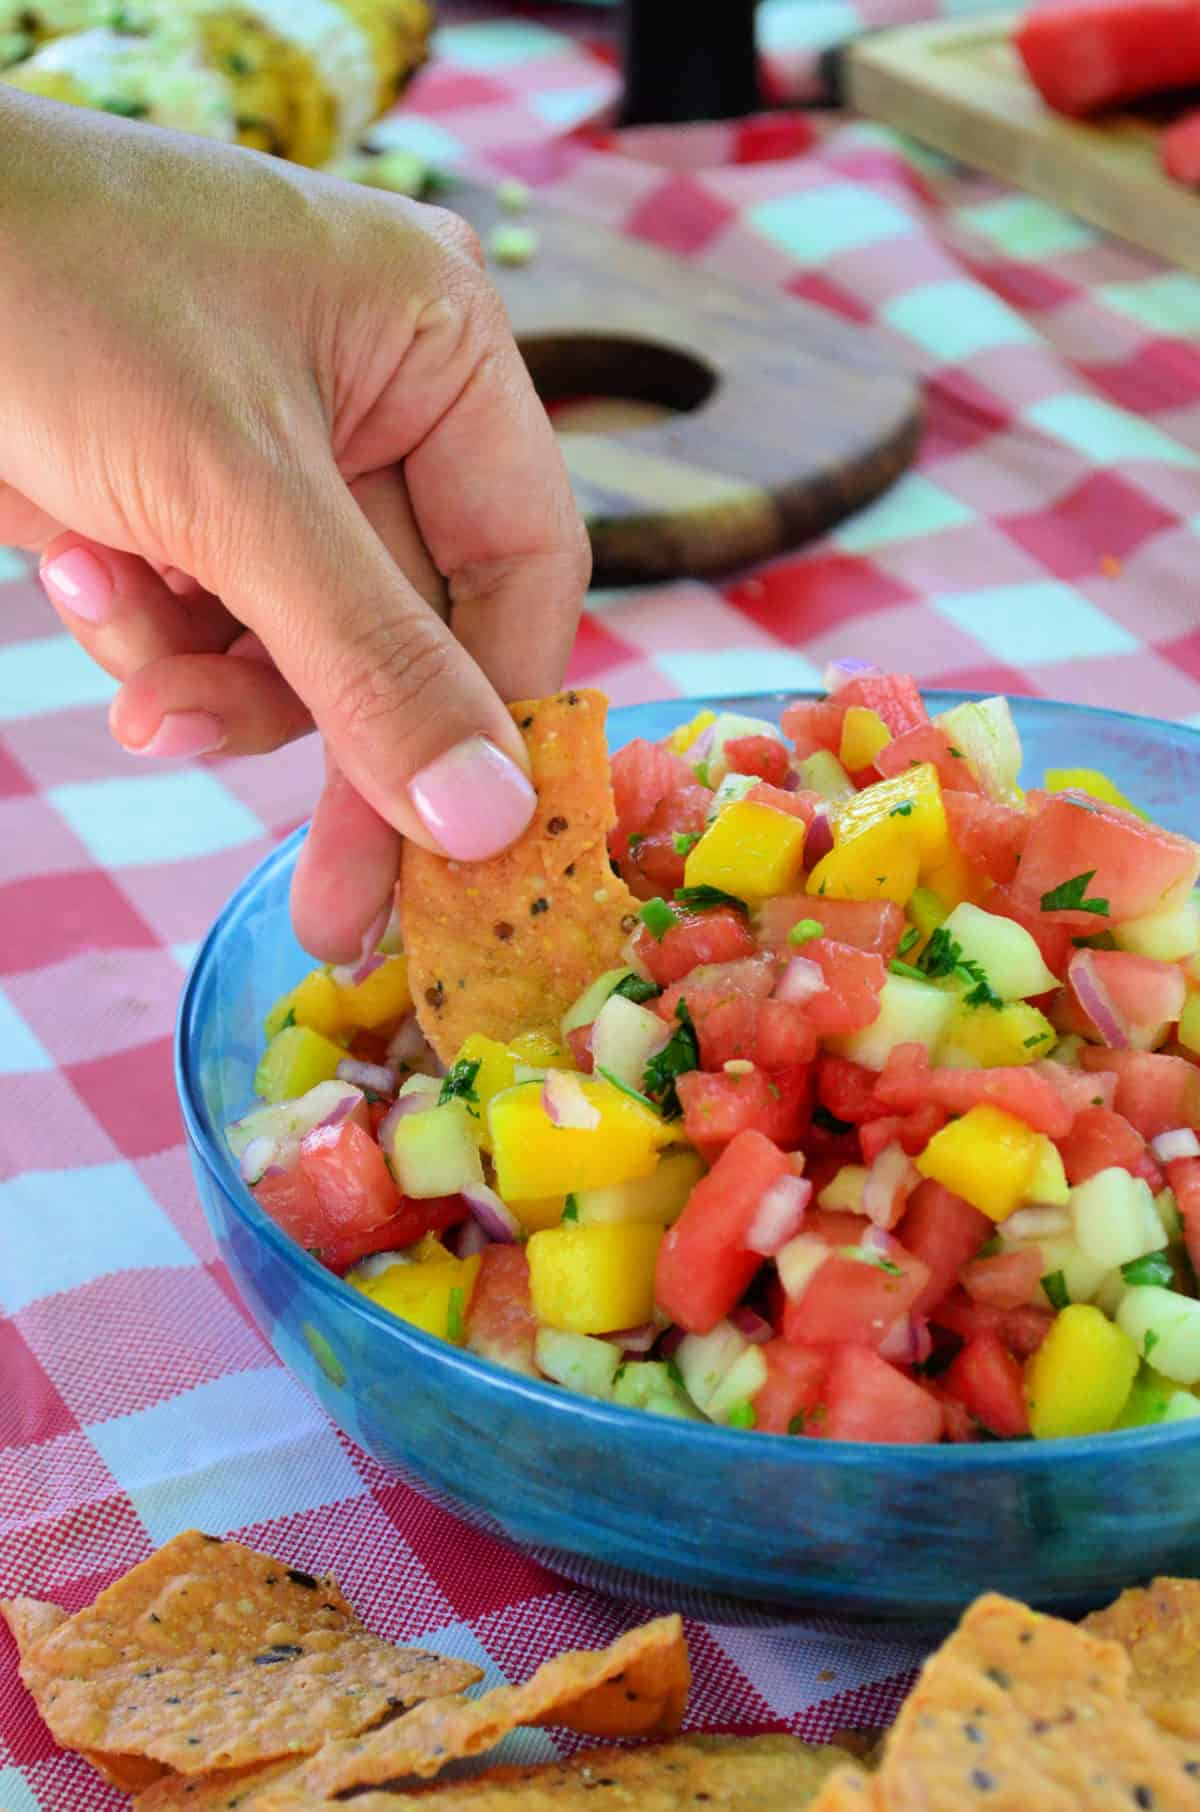 manicured hand dipping chip into watermelon salsa with red tablecloth in background.